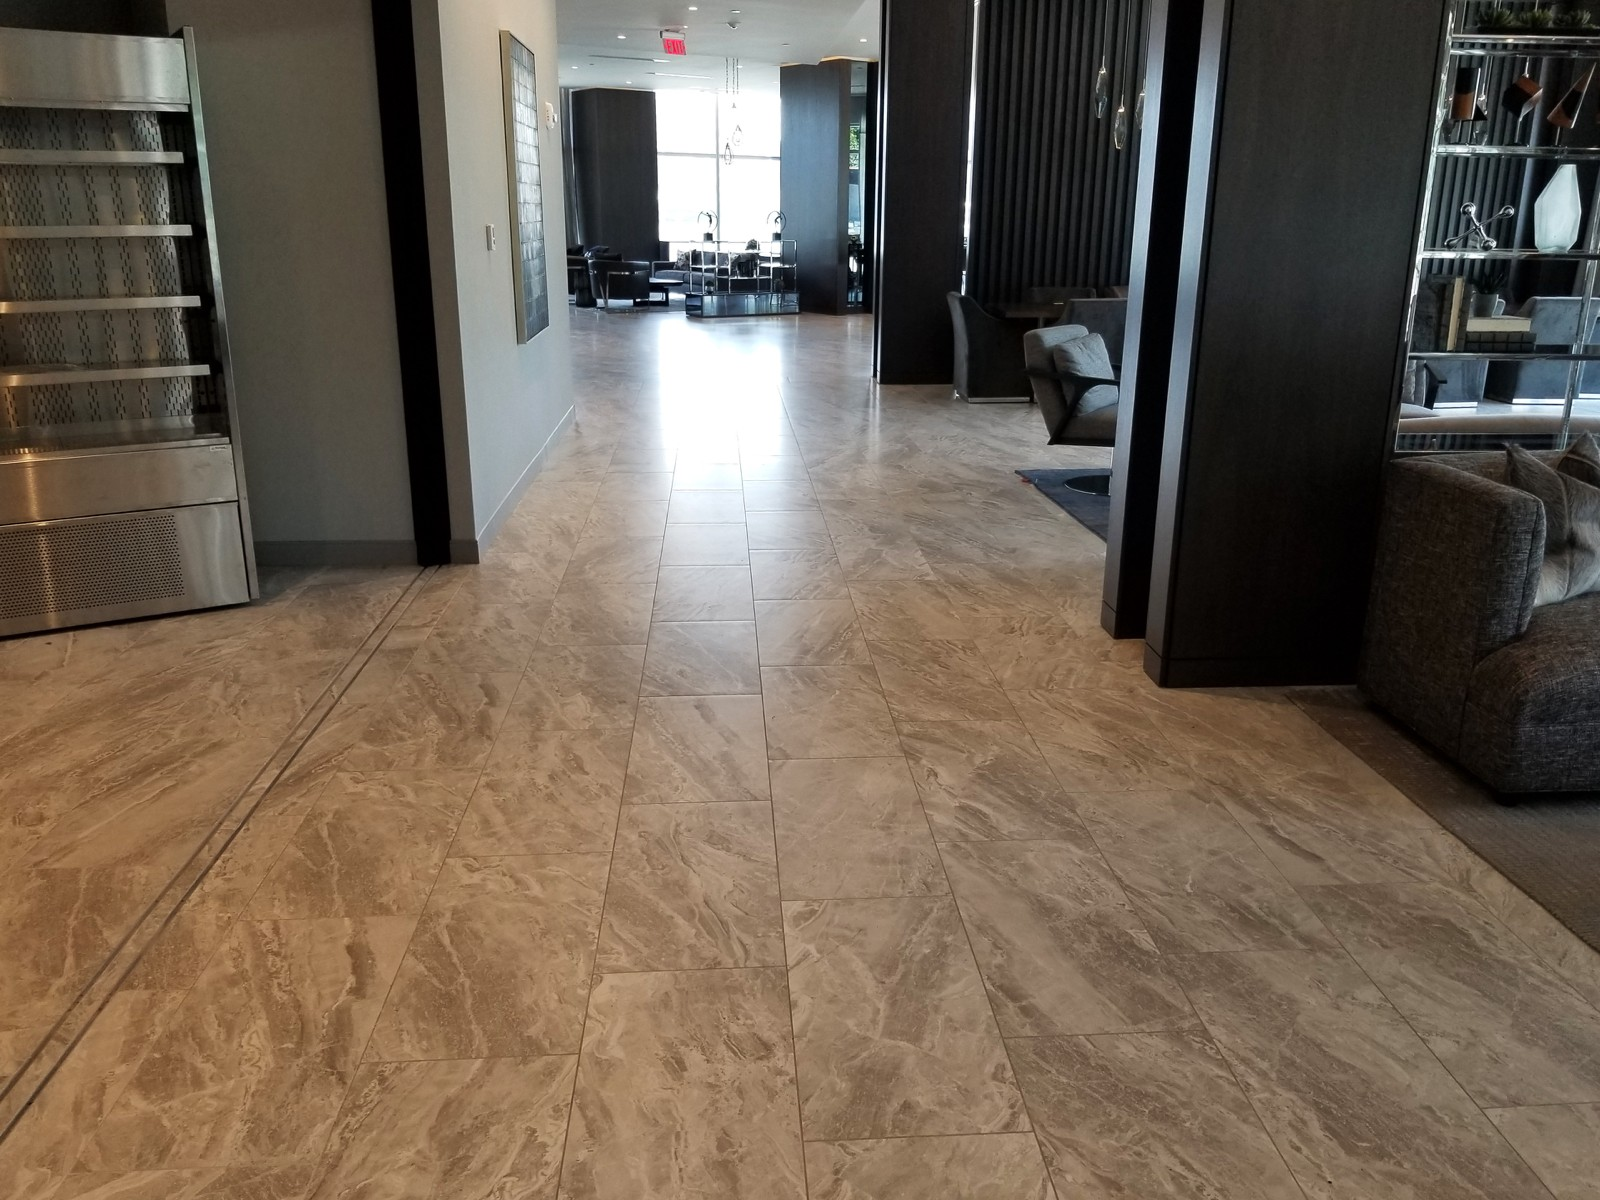 Envue Autograph Collection Old Bridge, NJ | Flooring Installation System